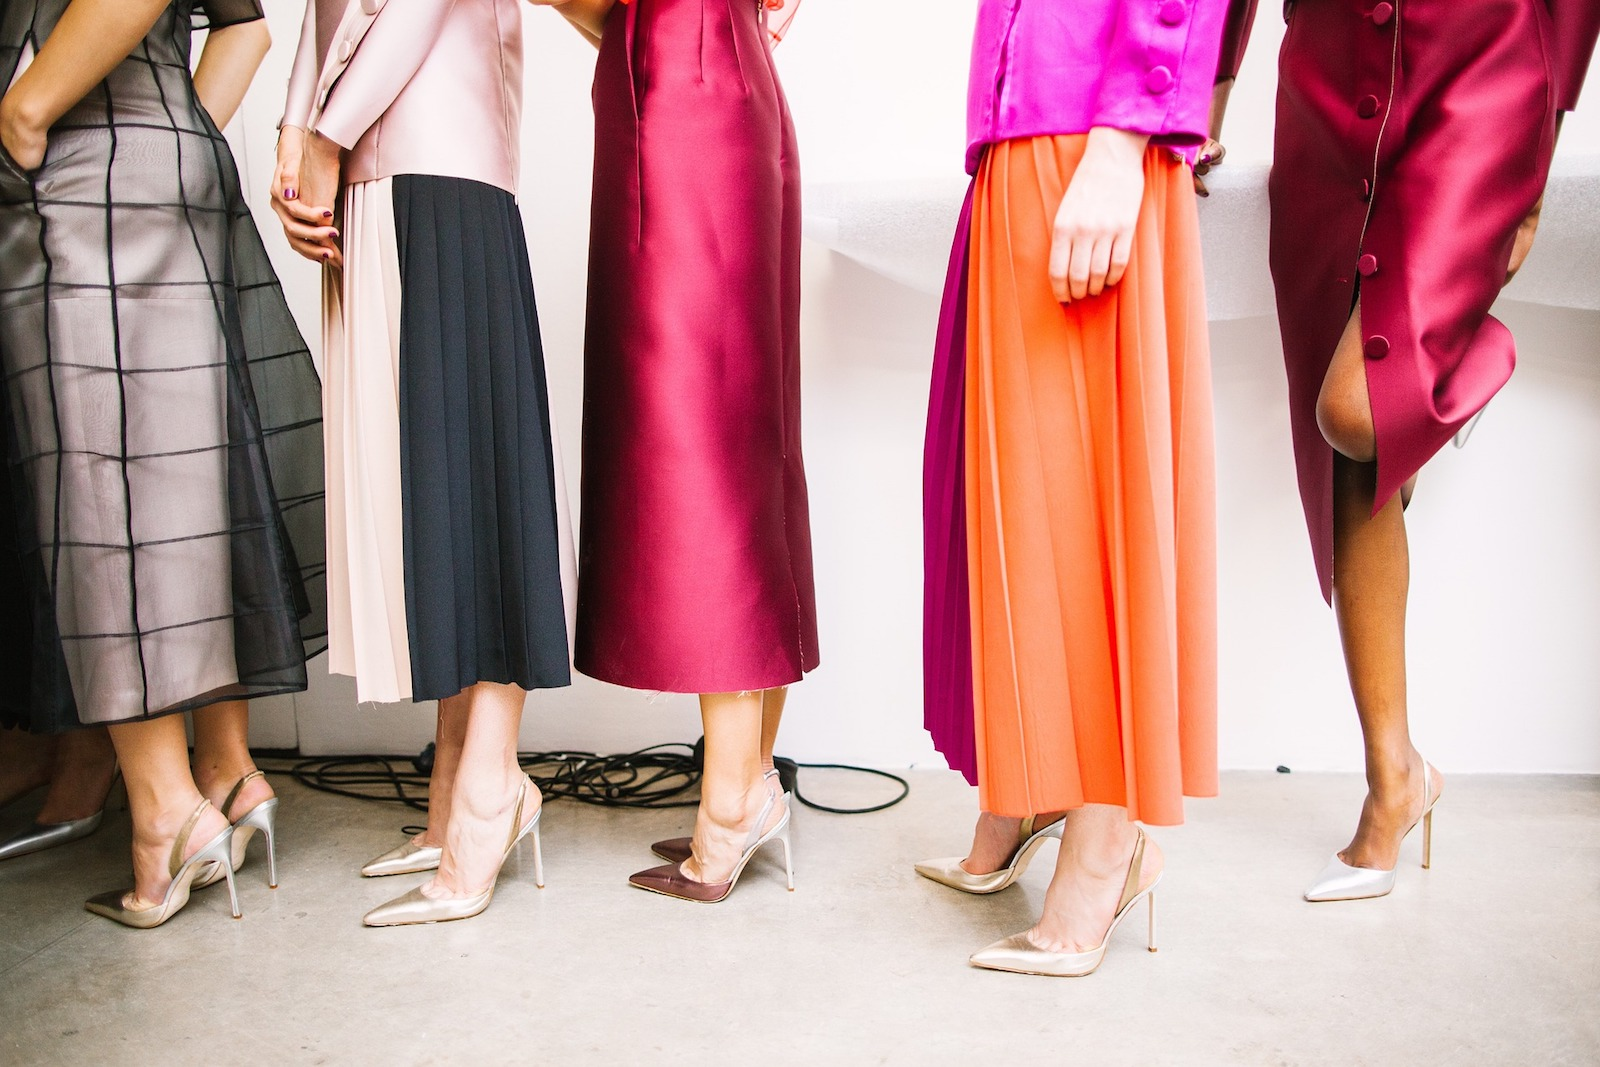 The Right Way To Store Skirts And Dresses: 14 Easy Steps [With Photos]